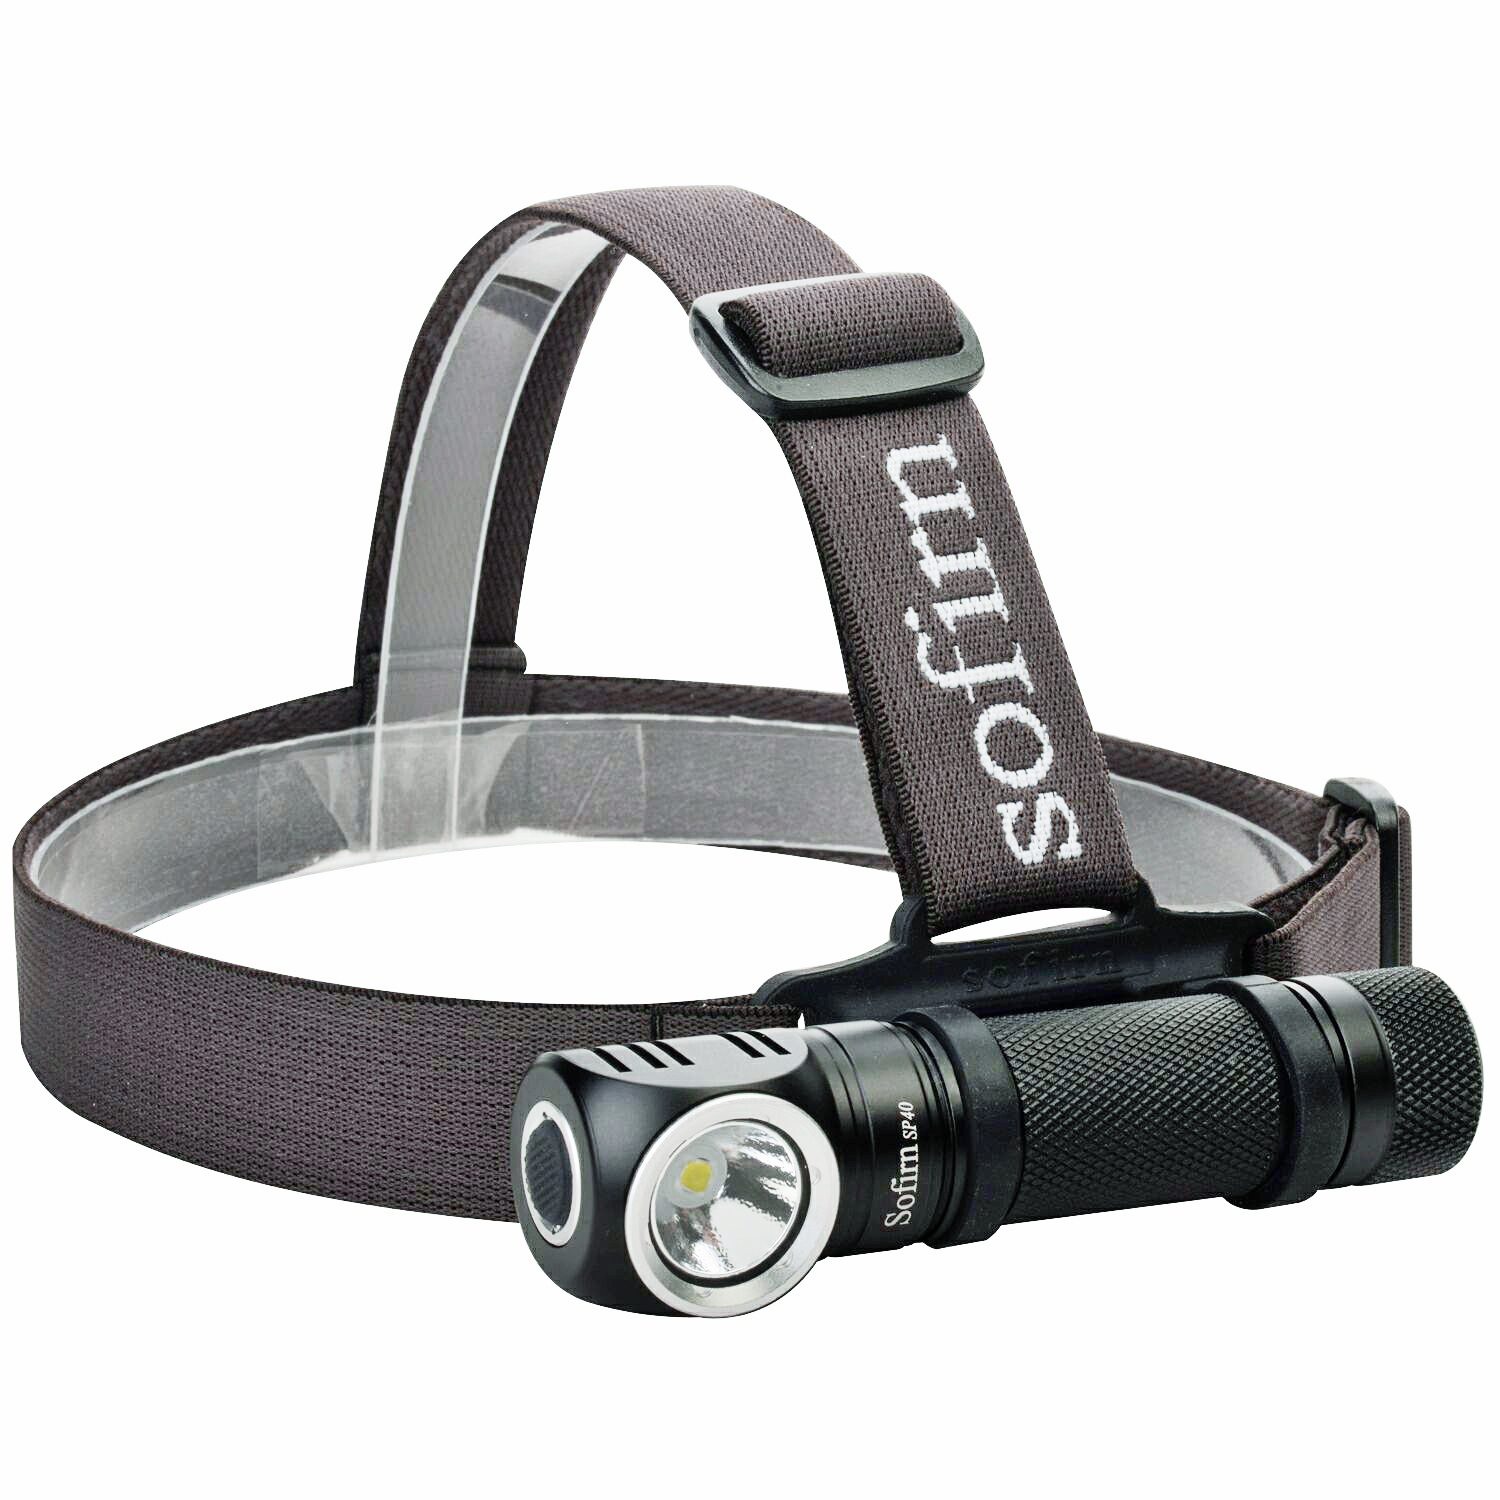 Sofirn SP40 Headlamp LED Cree XPL 18650 USB Rechargeable Head lamp 1200lm Bright Outdoor Fishing Headlight Magnet Tail Cap 1